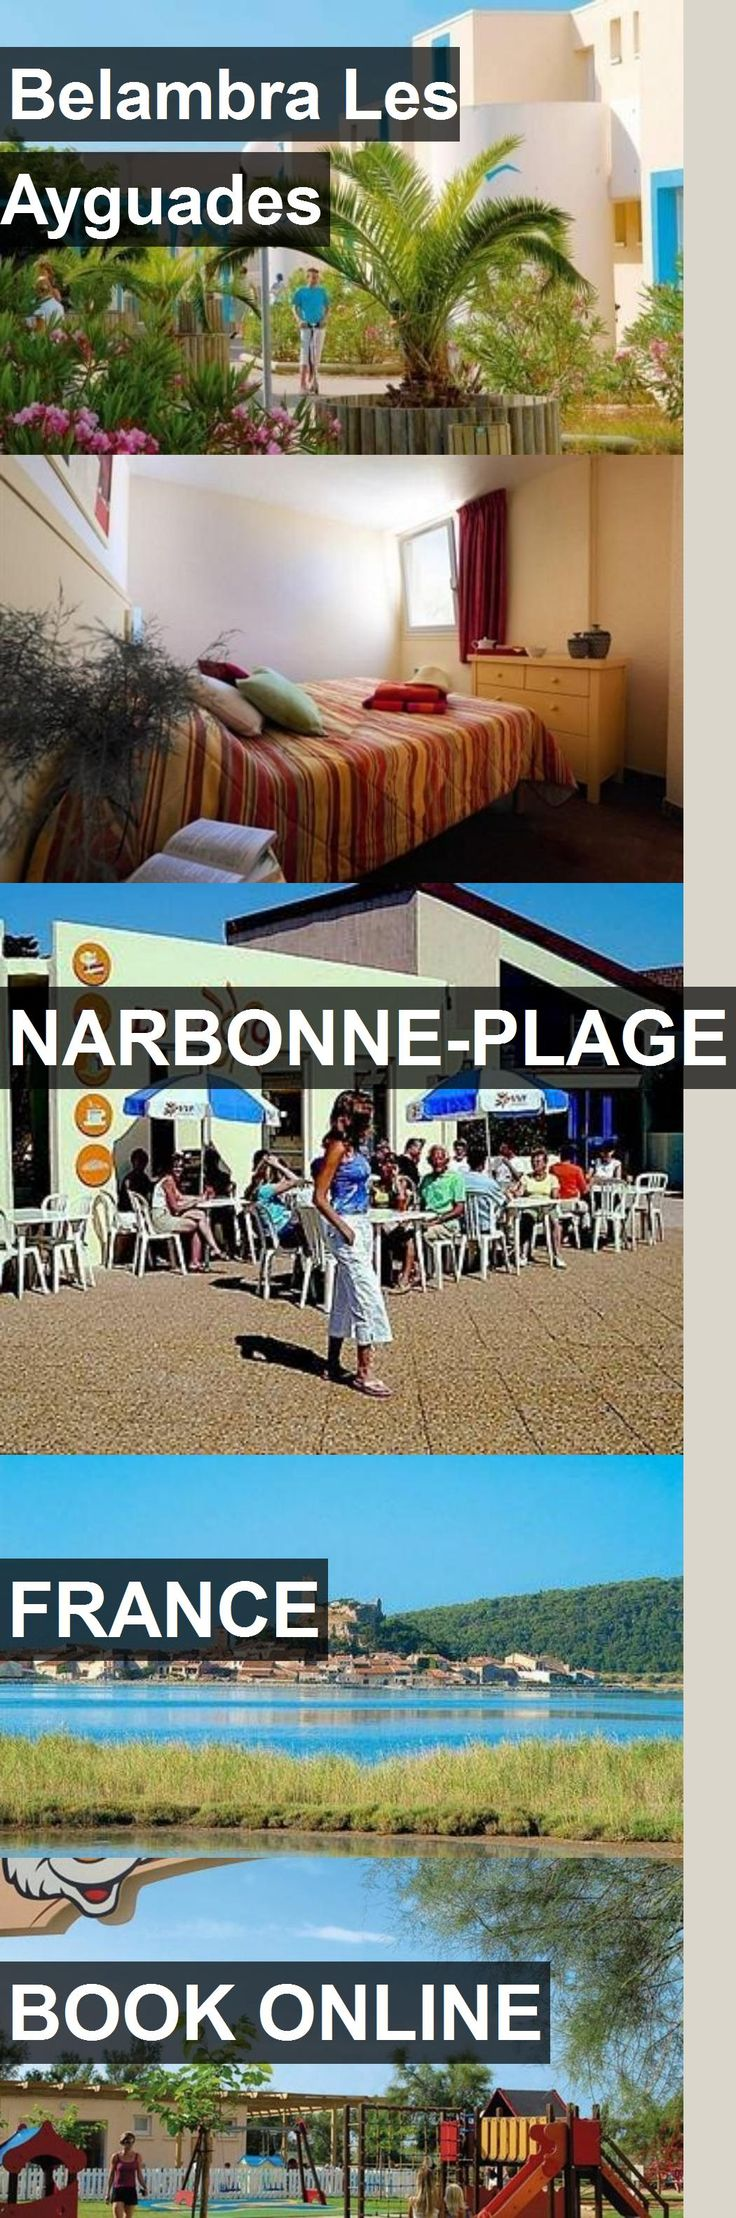 Hotel Belambra Les Ayguades in Narbonne-Plage, France. For more information, photos, reviews and best prices please follow the link. #France #Narbonne-Plage #travel #vacation #hotel